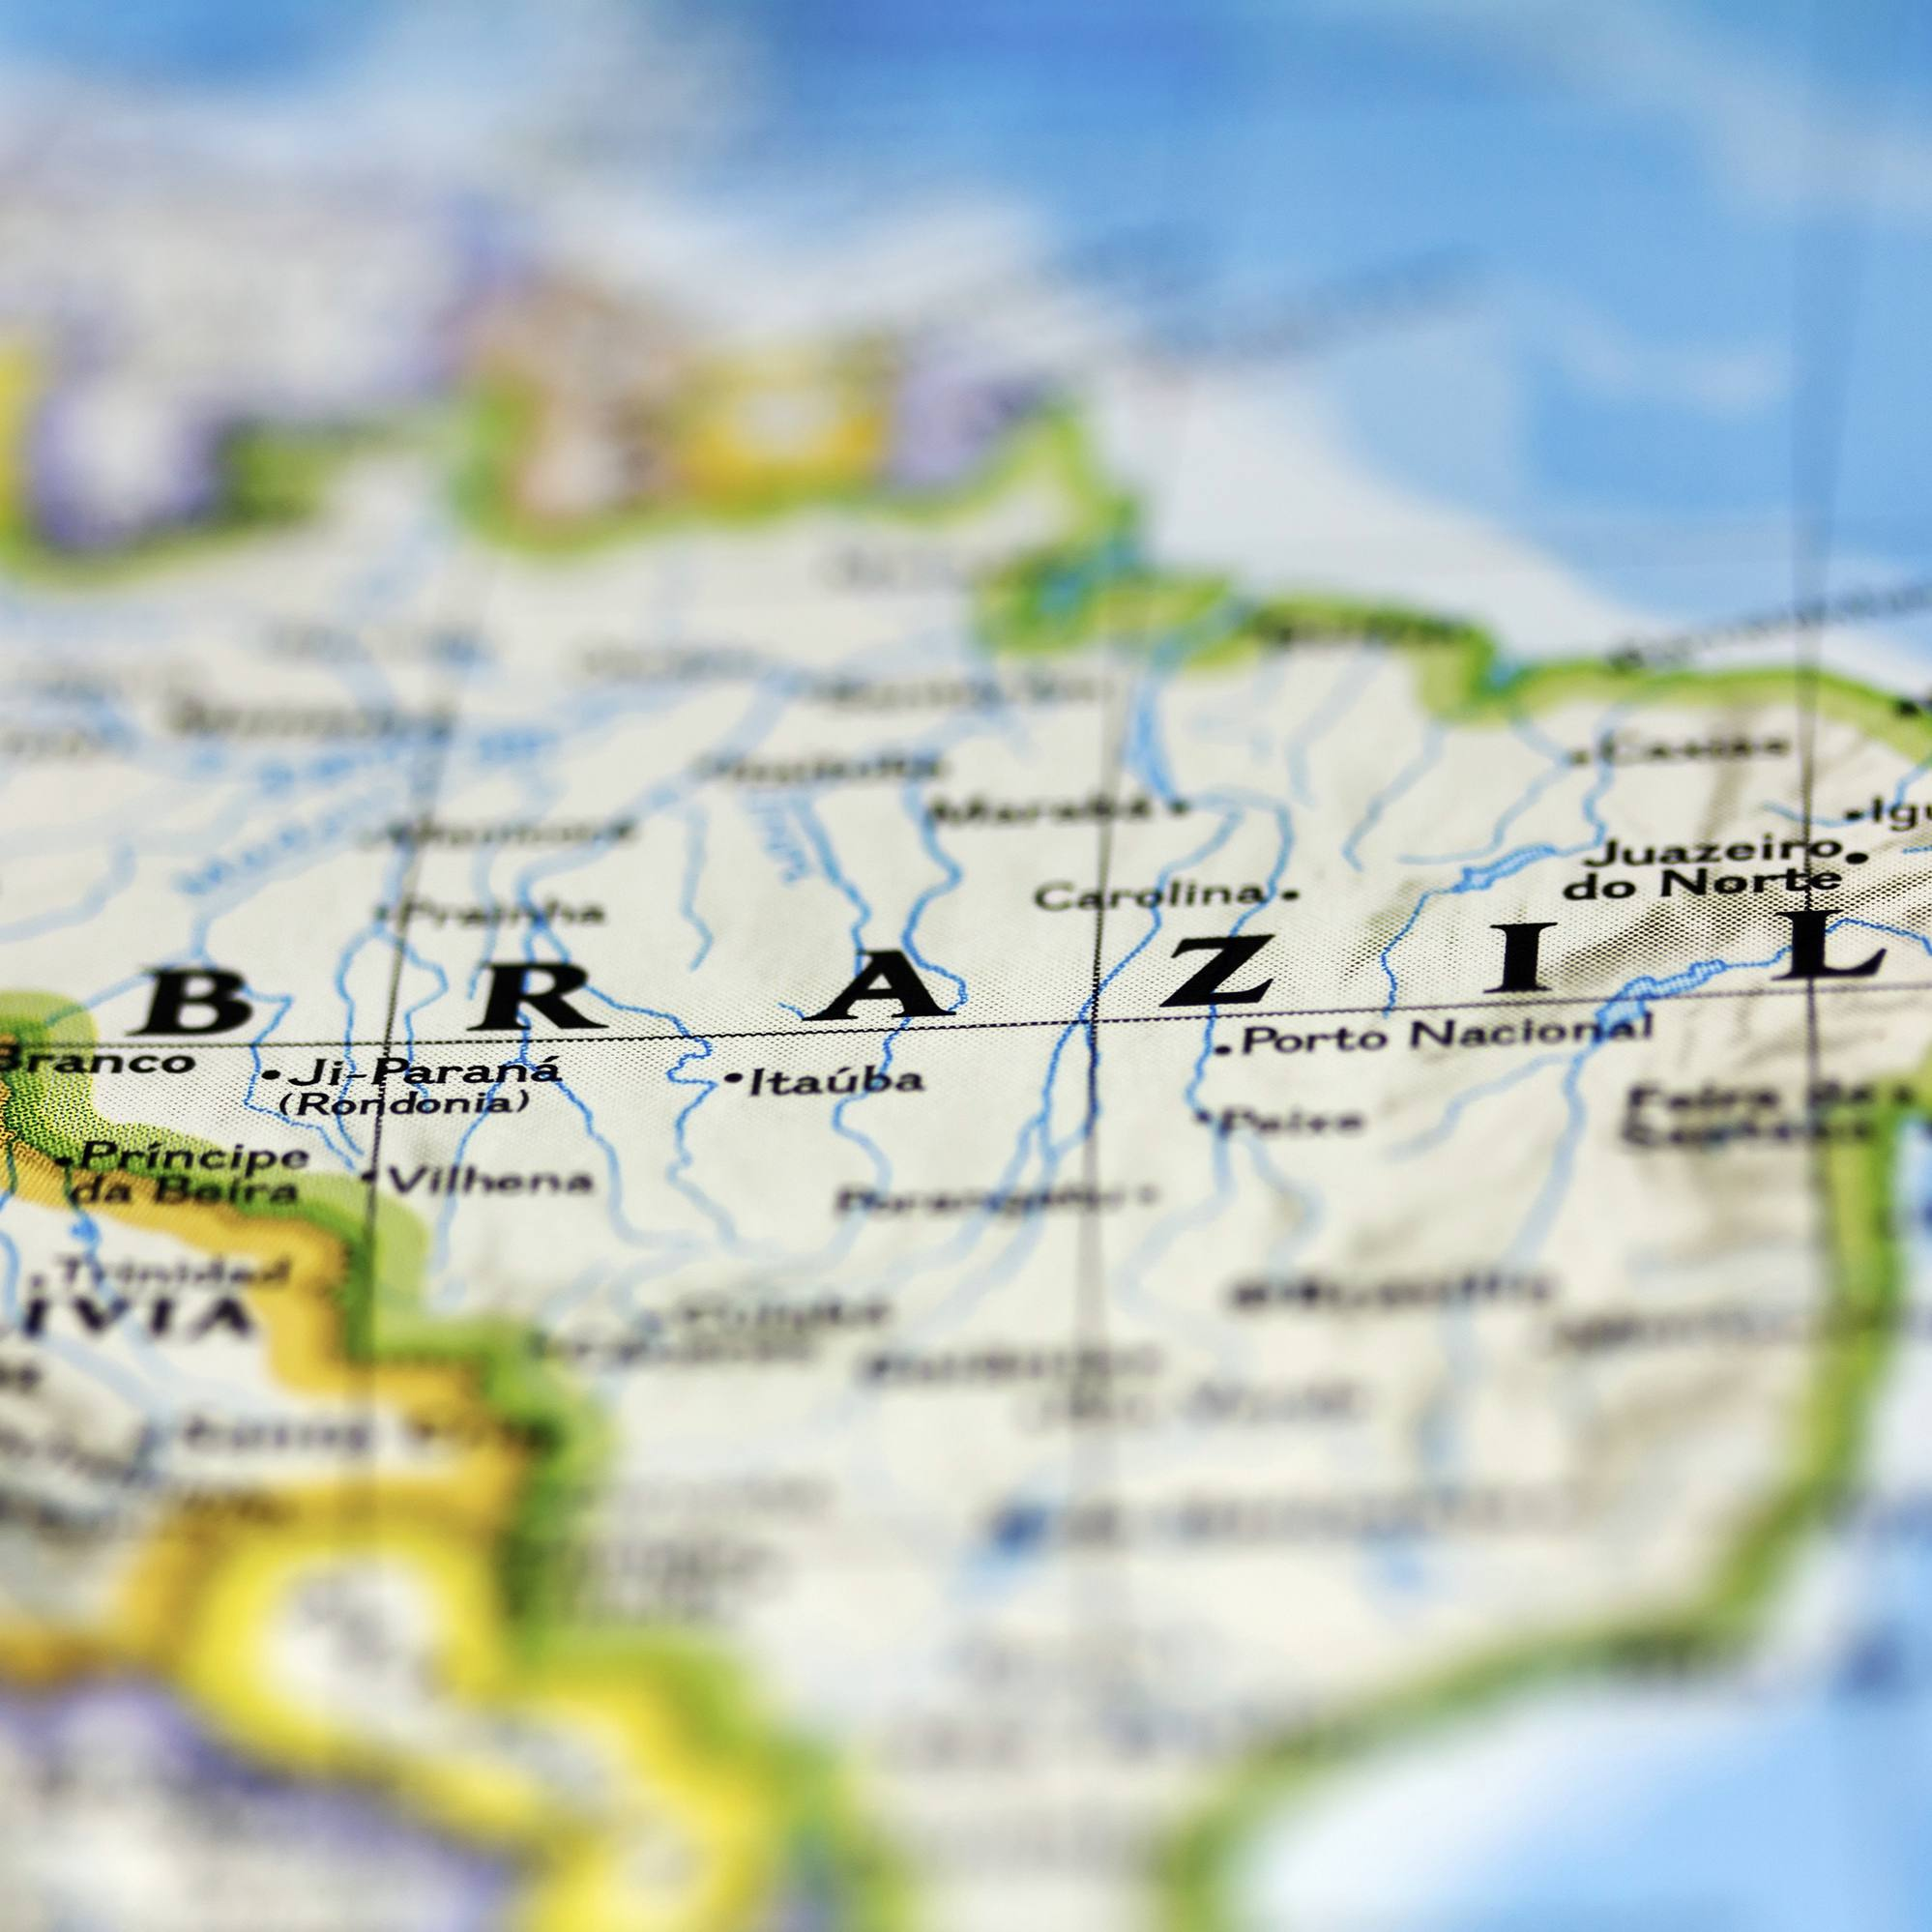 traveling map of the country Brazil in South America